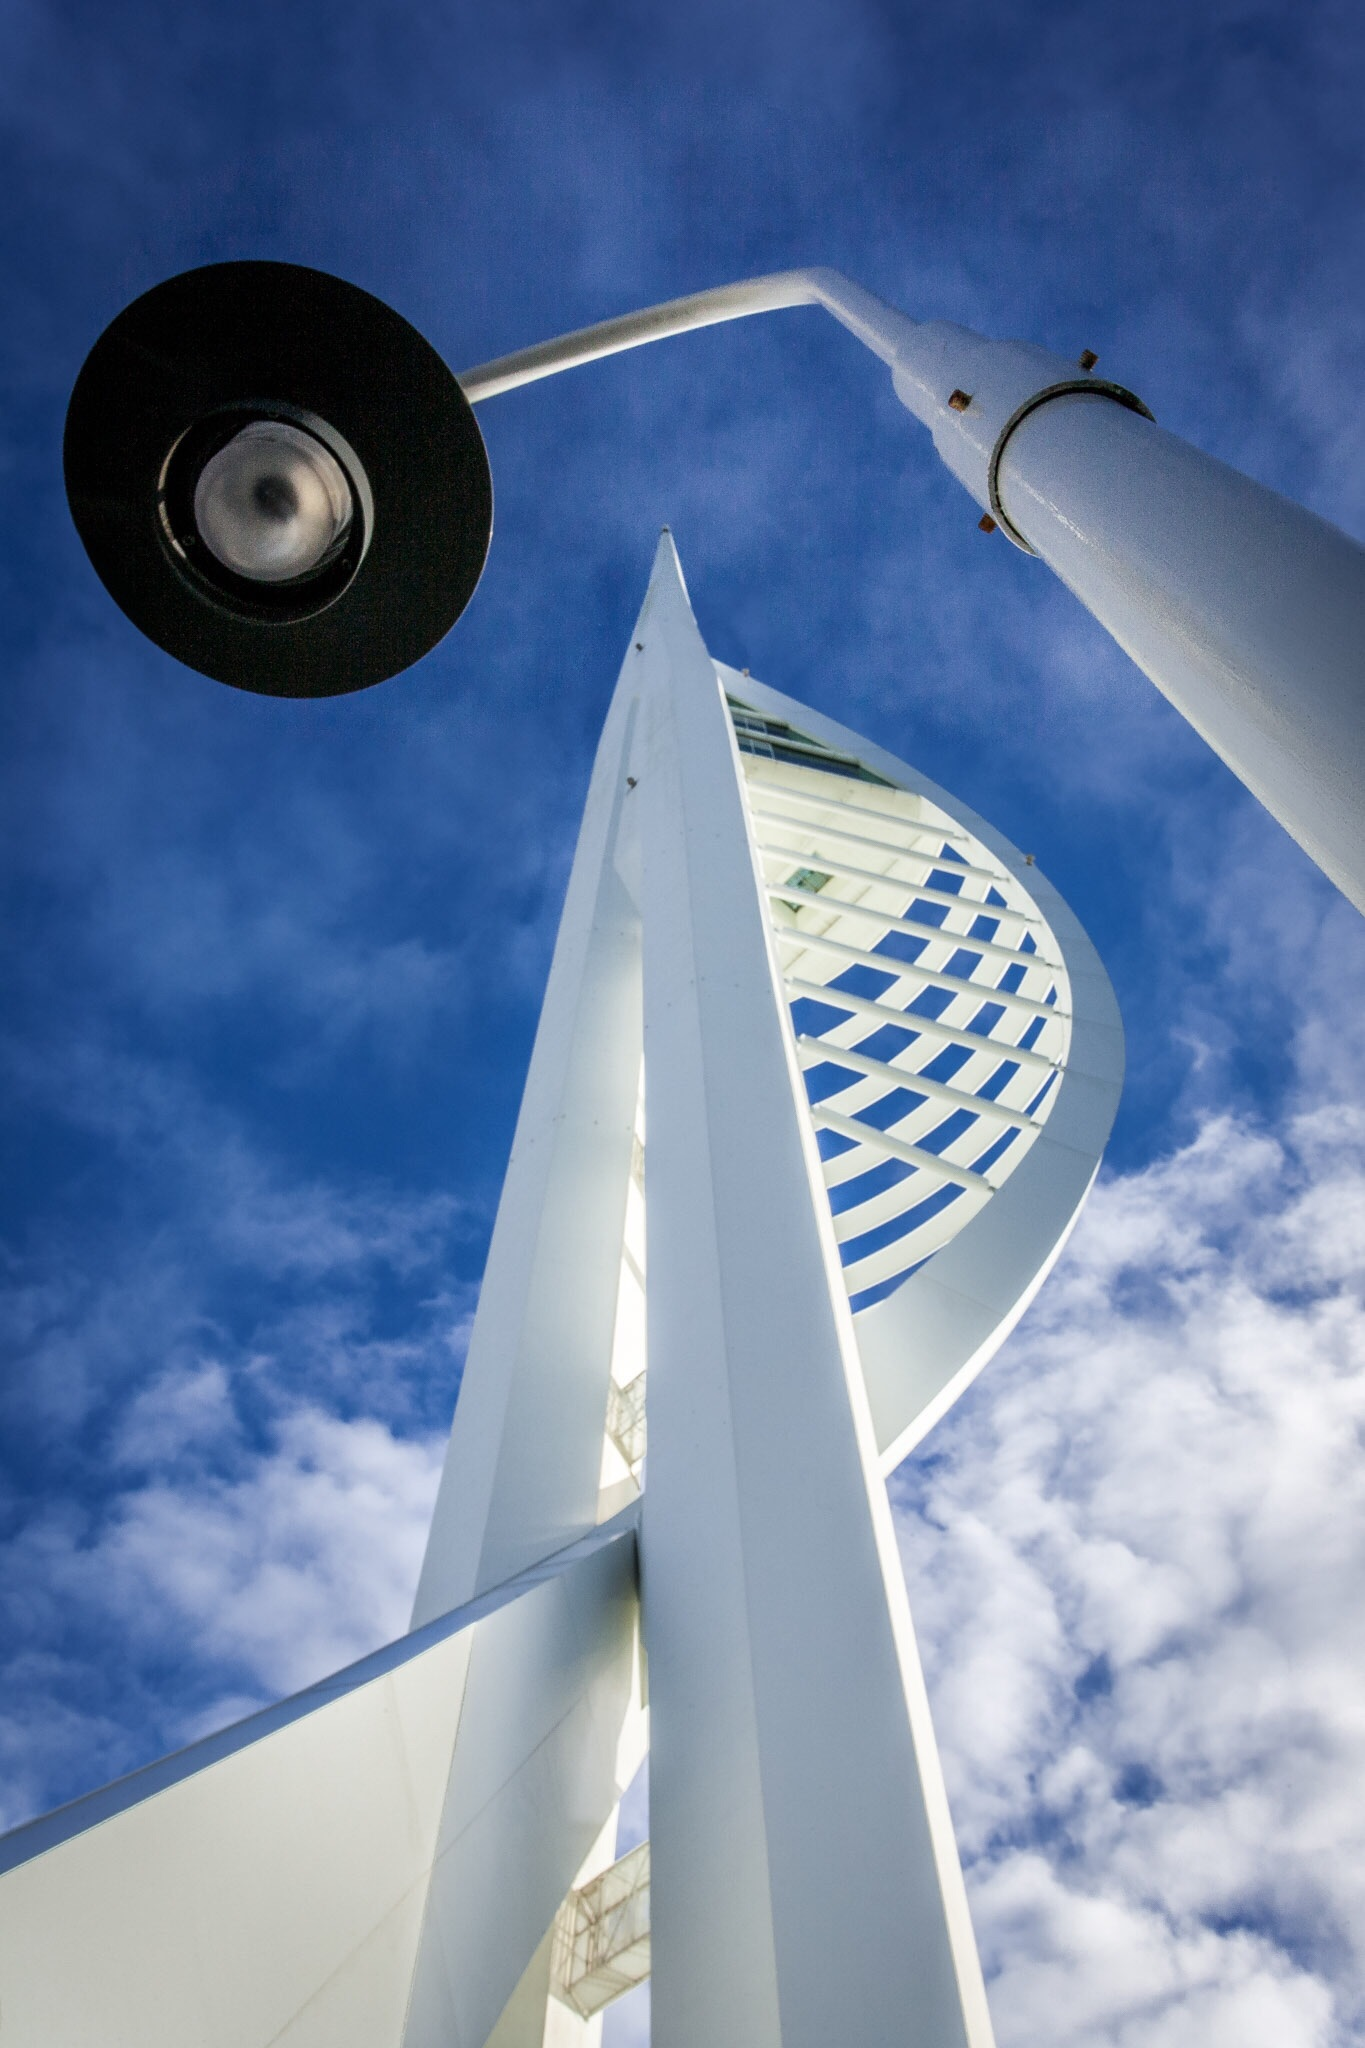 A picture of the Spinnaker Tower in Portsmouth